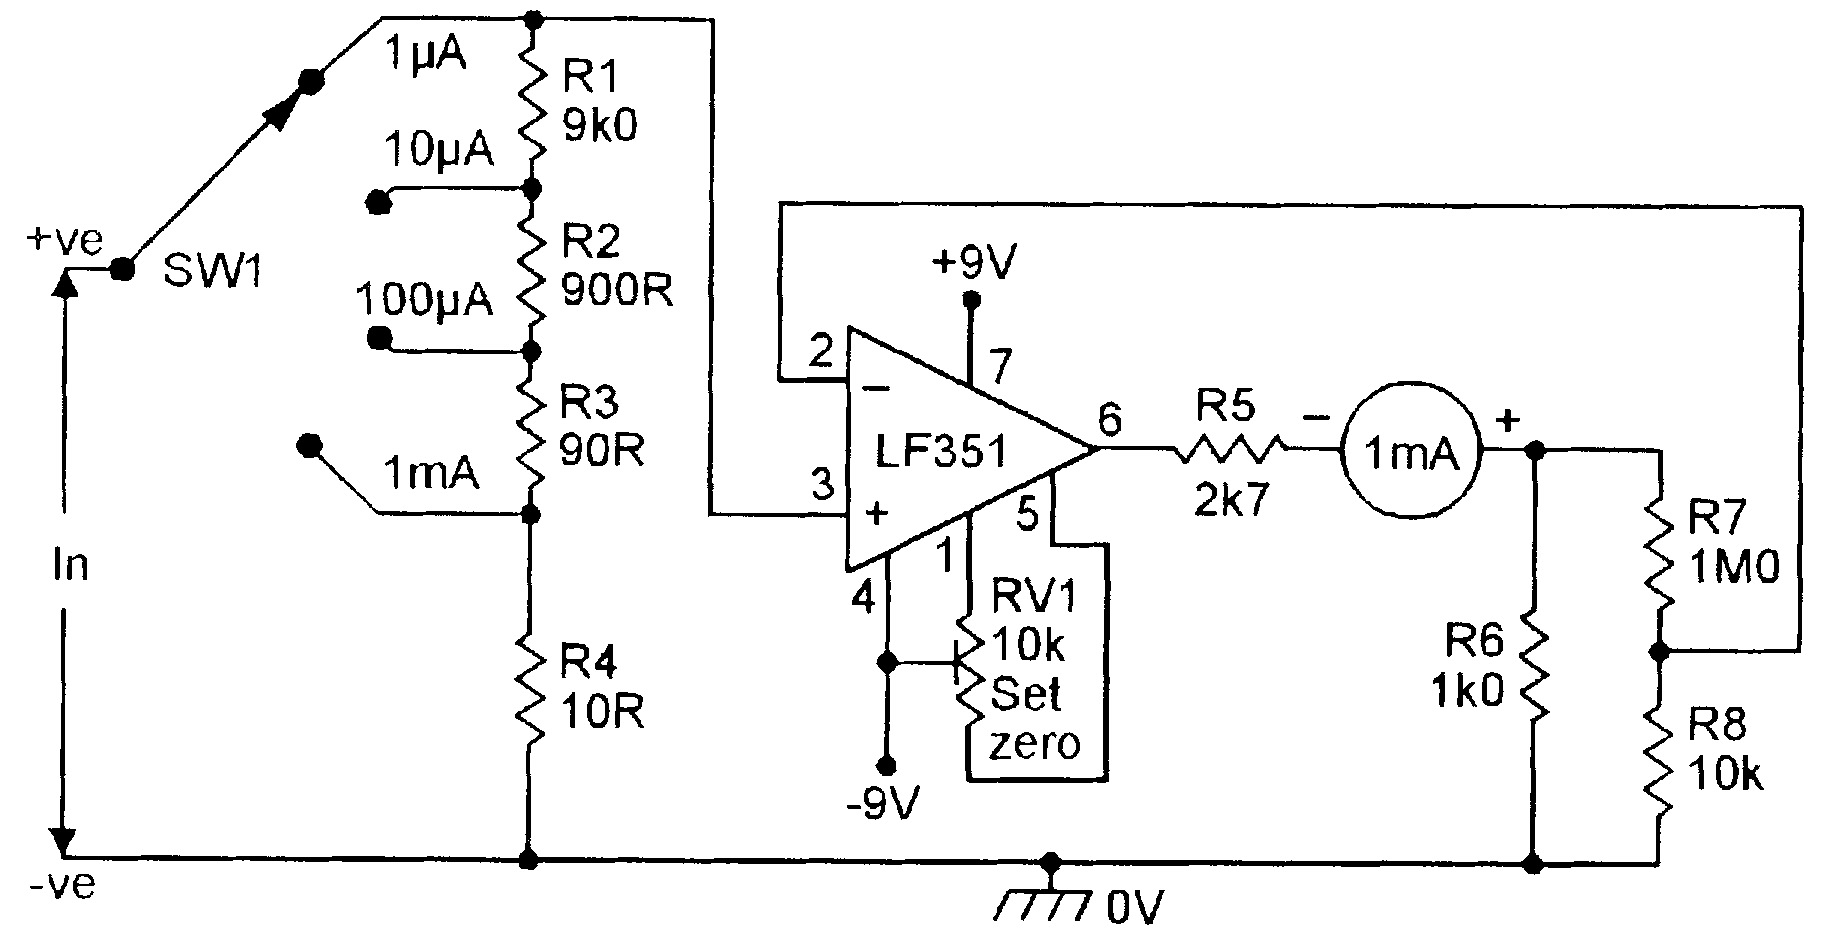 Op Amp Cookbook Part 4 Nuts Volts Magazine Connect A Simple Circuit With Voltmeter And Ammeter As Shown Figure 14 Four Range Dc Microammeter